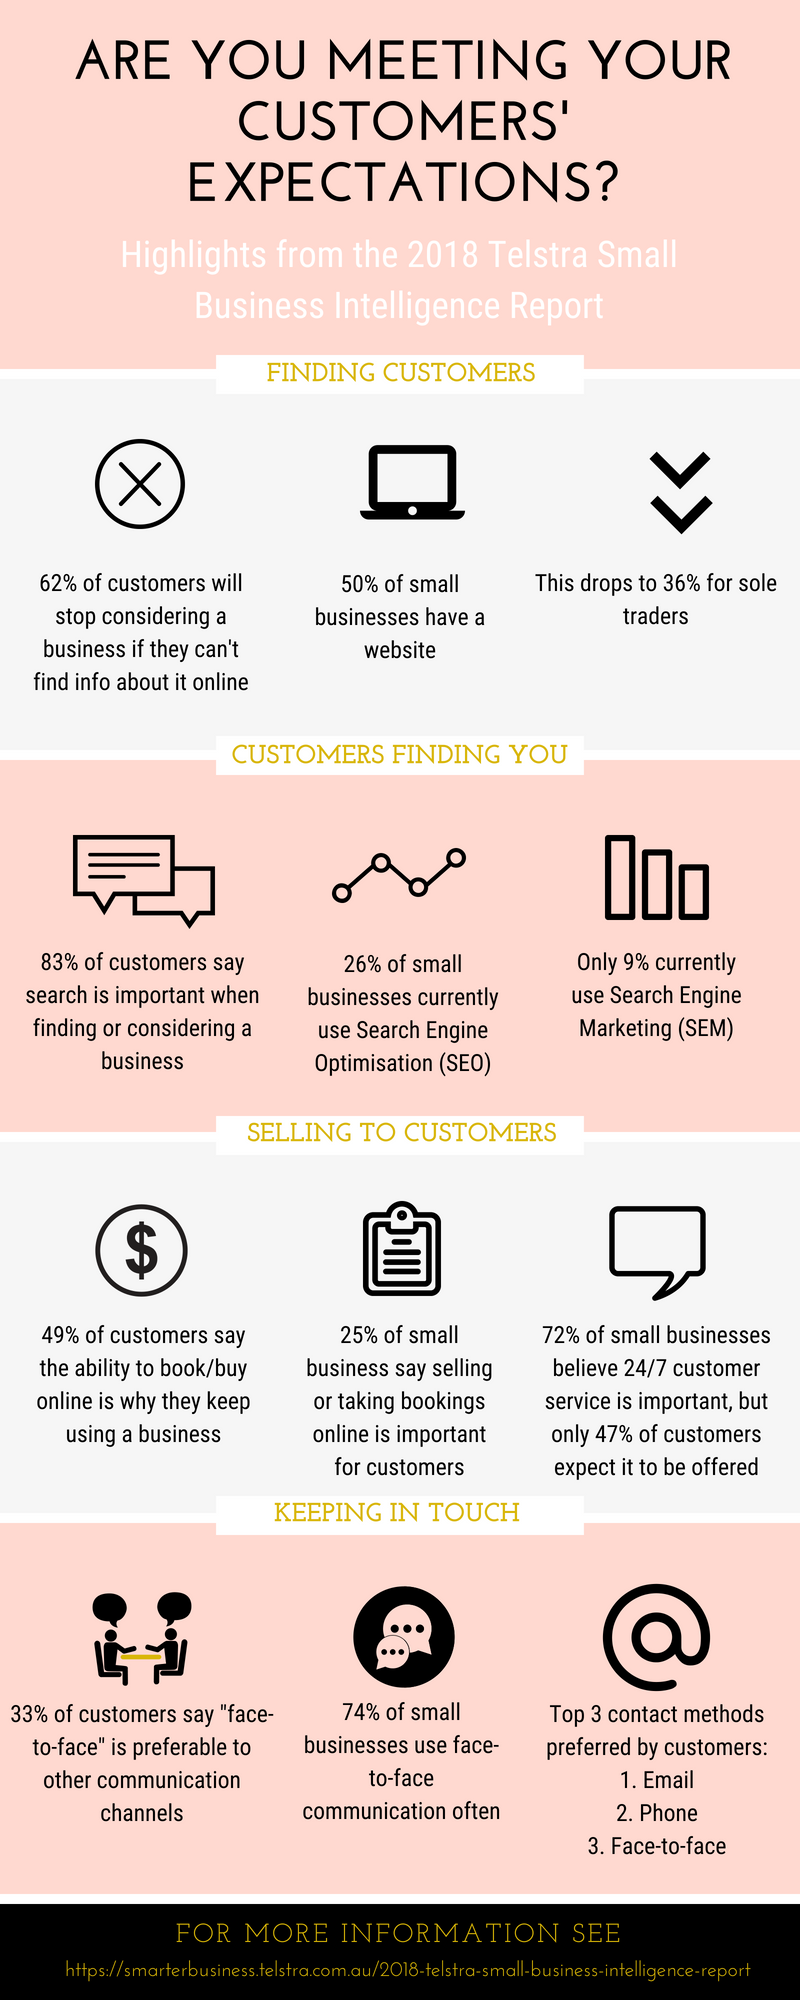 Telstra Small Business Report - Infographic.png